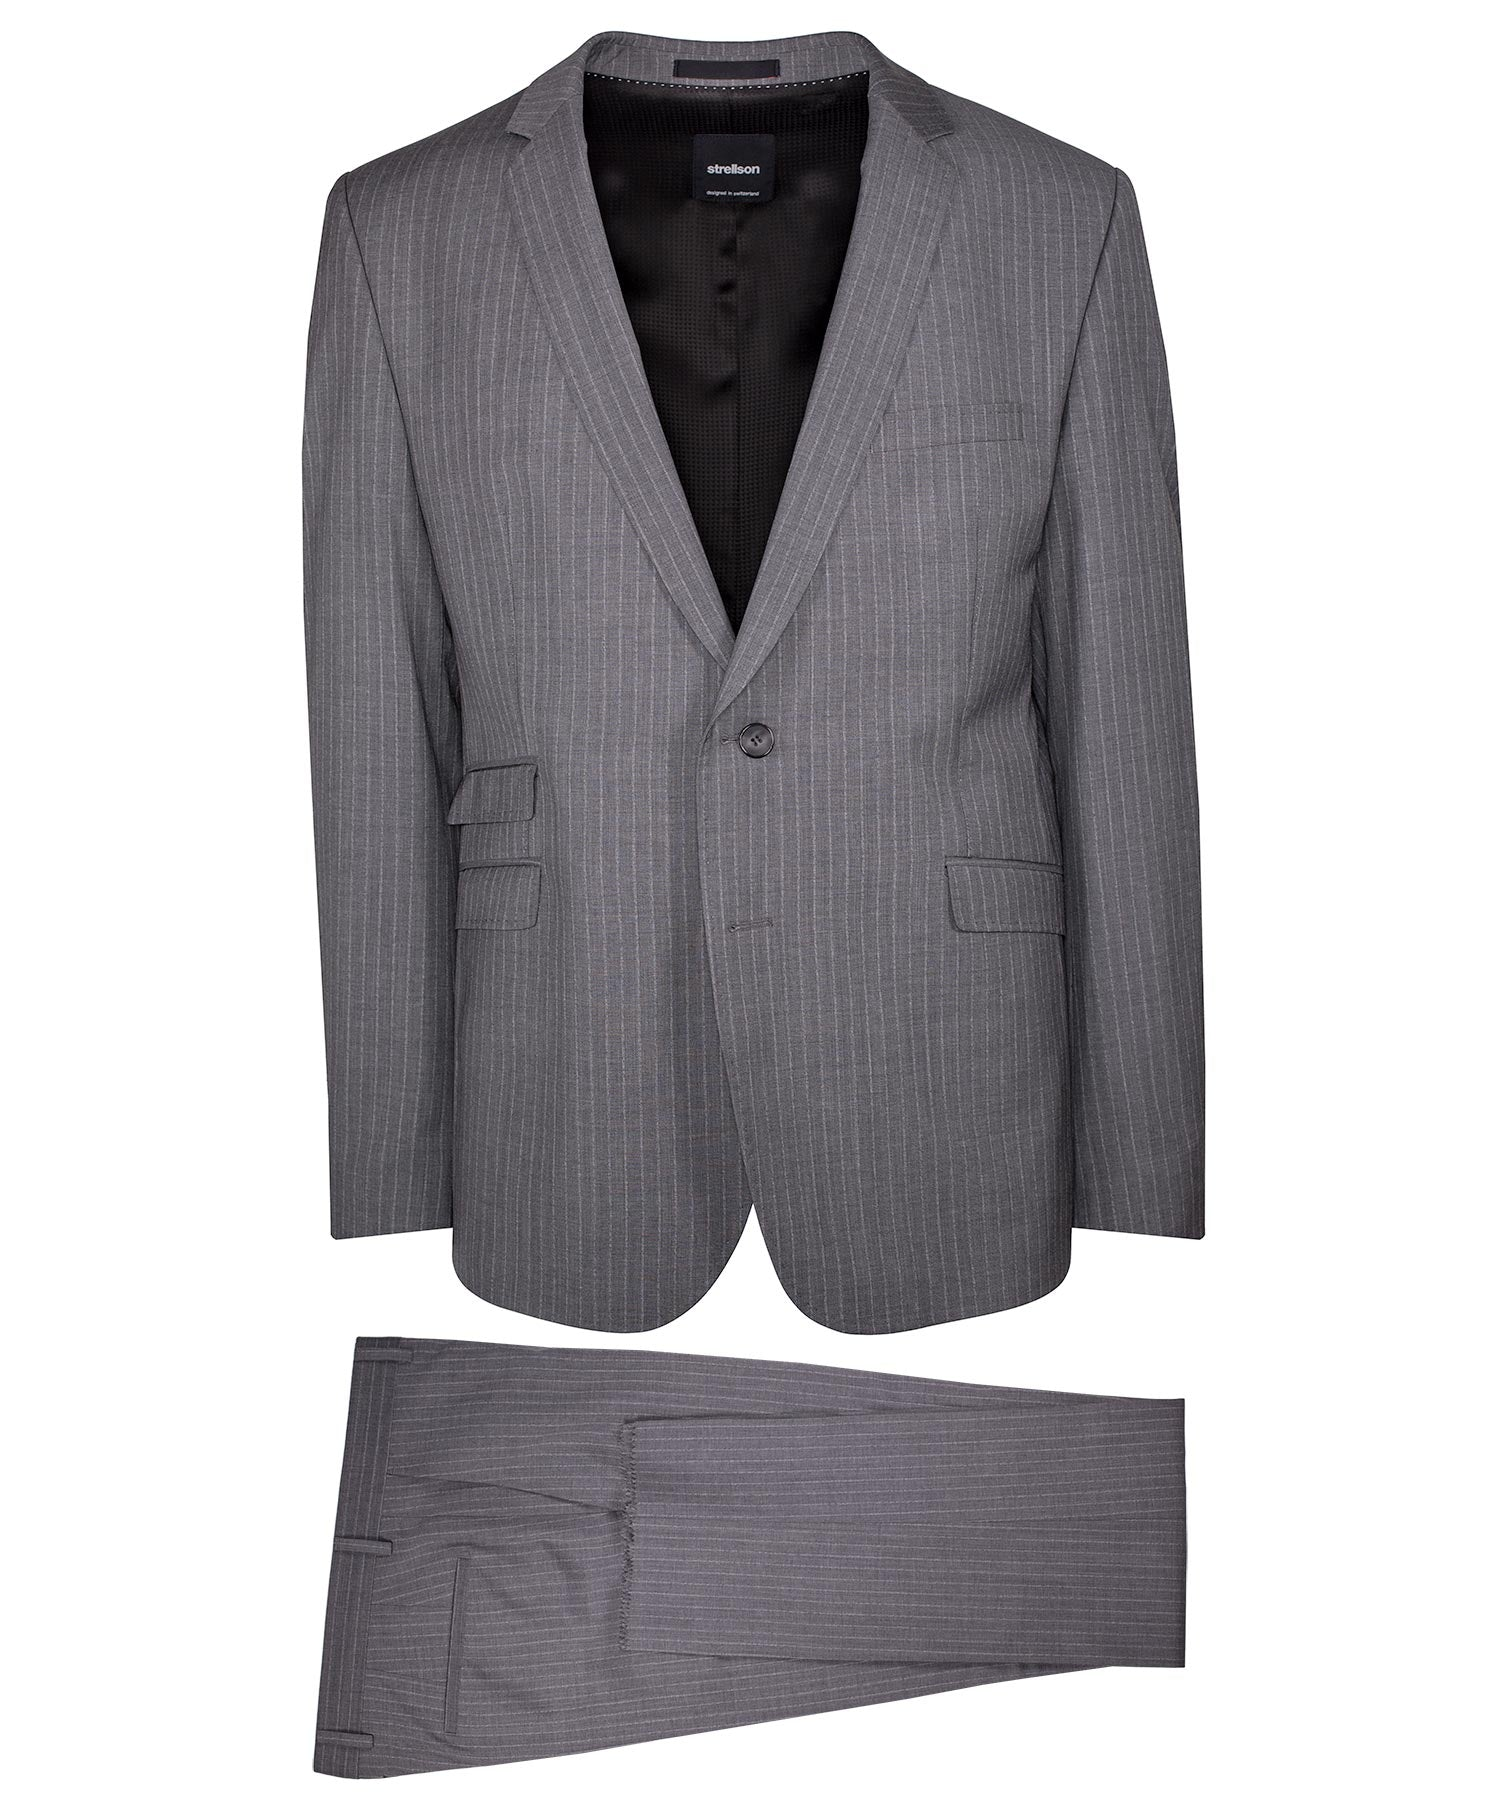 Vince-Madden Dark Grey Thin Faded Pinstripe Suit